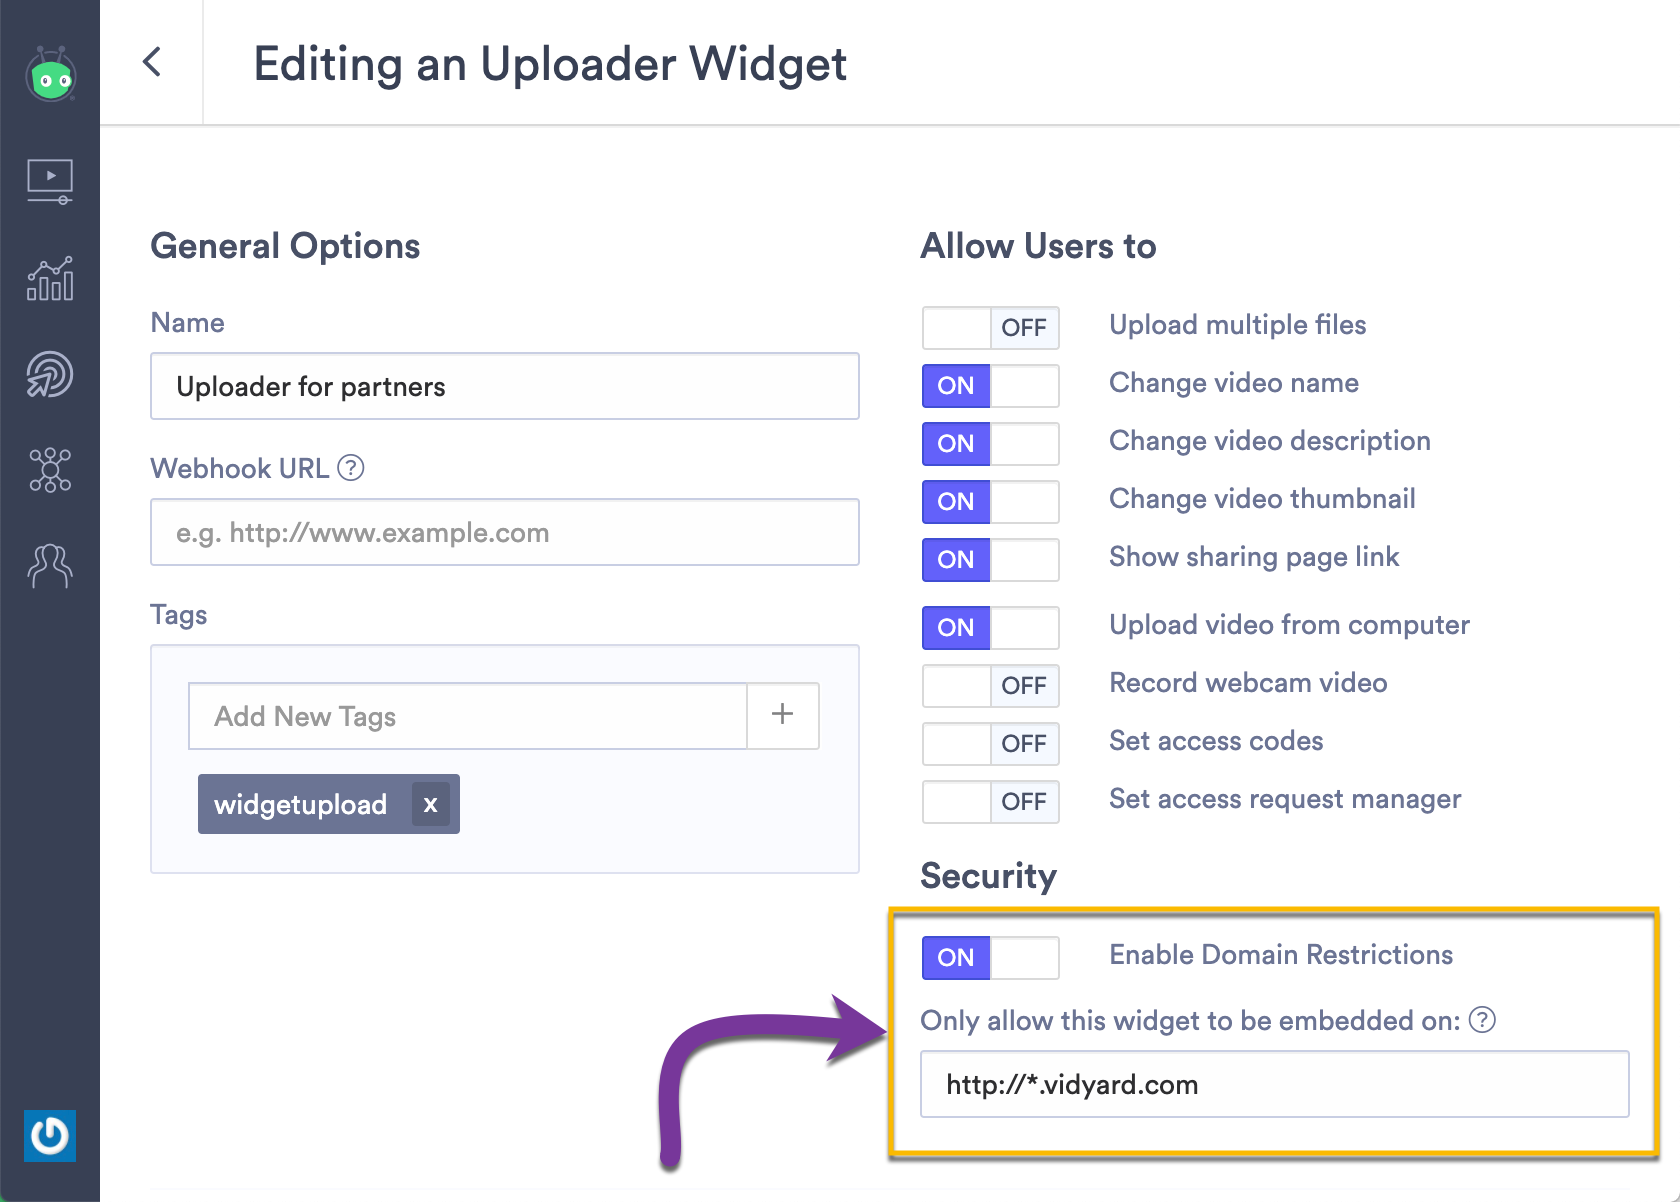 Restricting where you uploader widget can be embedded to a specific web domain